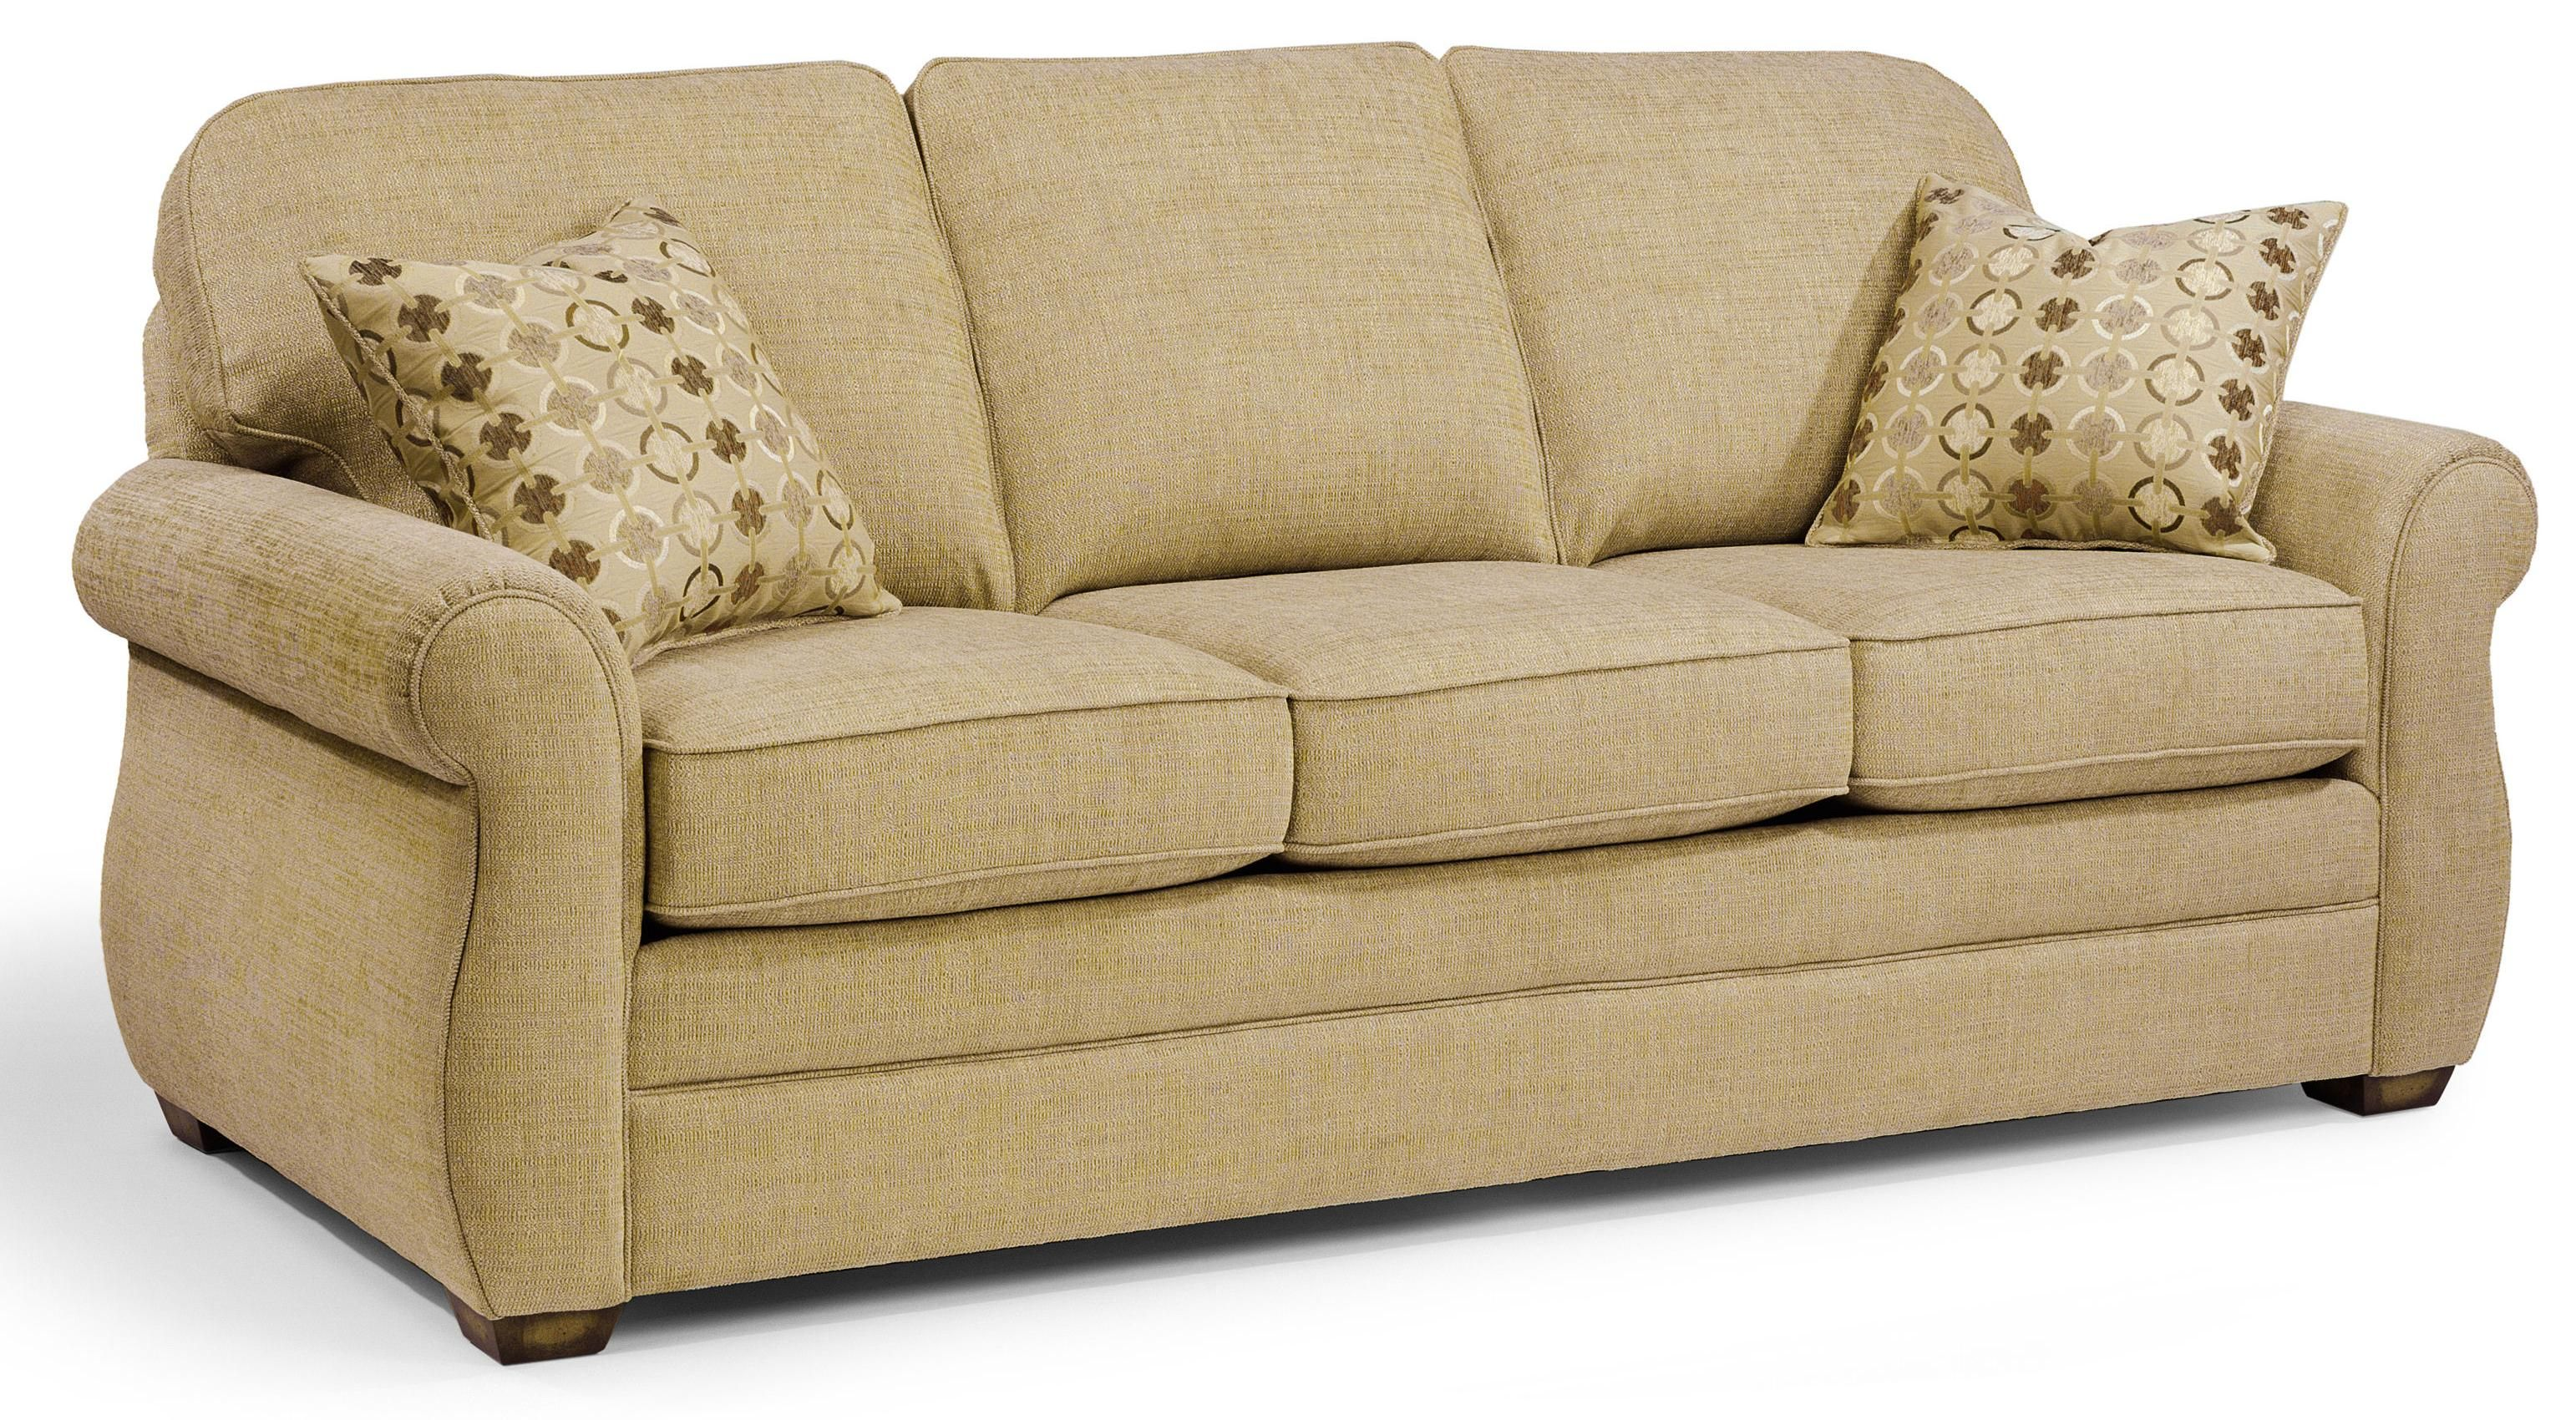 whitney by flexsteel suburban furniture sofas